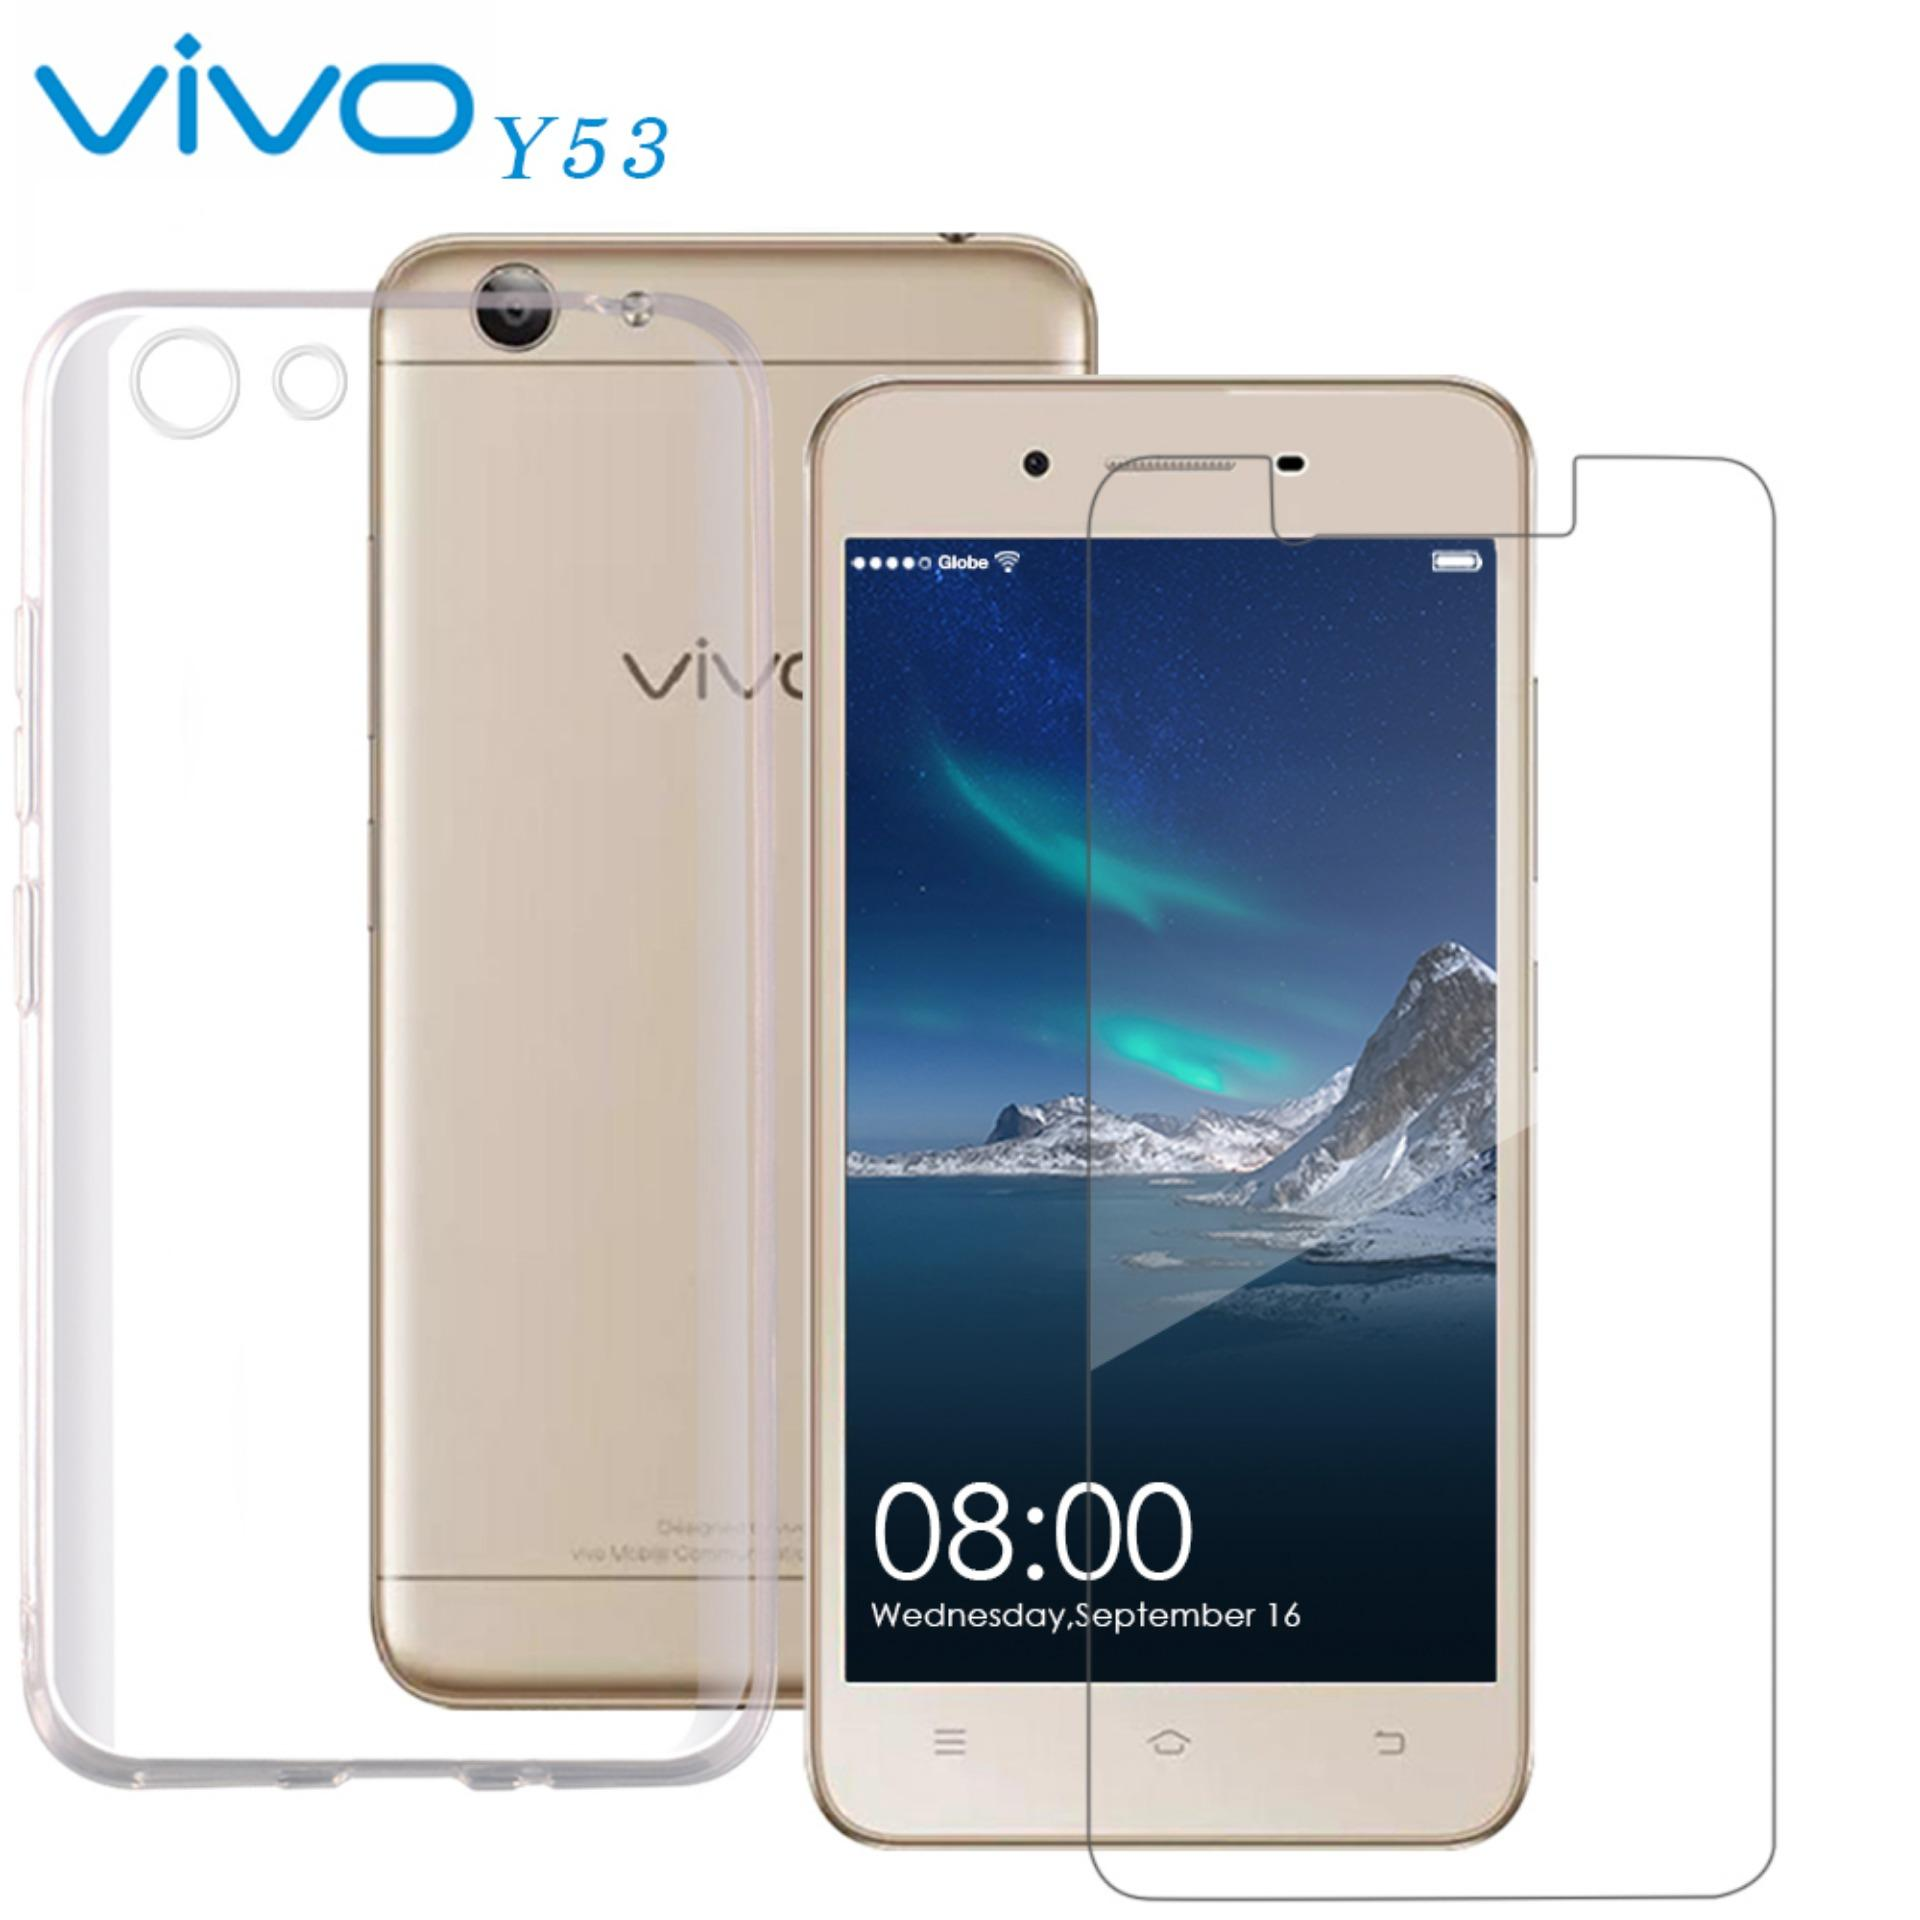 Phone Cases For Sale Cellphone Prices Brands Specs In Hardcase Alumunium Oppo Find 5 Mini Gold Tylex Tempered Glass 2 Pcs With Free Jelly Case Vivo Y53 Clear